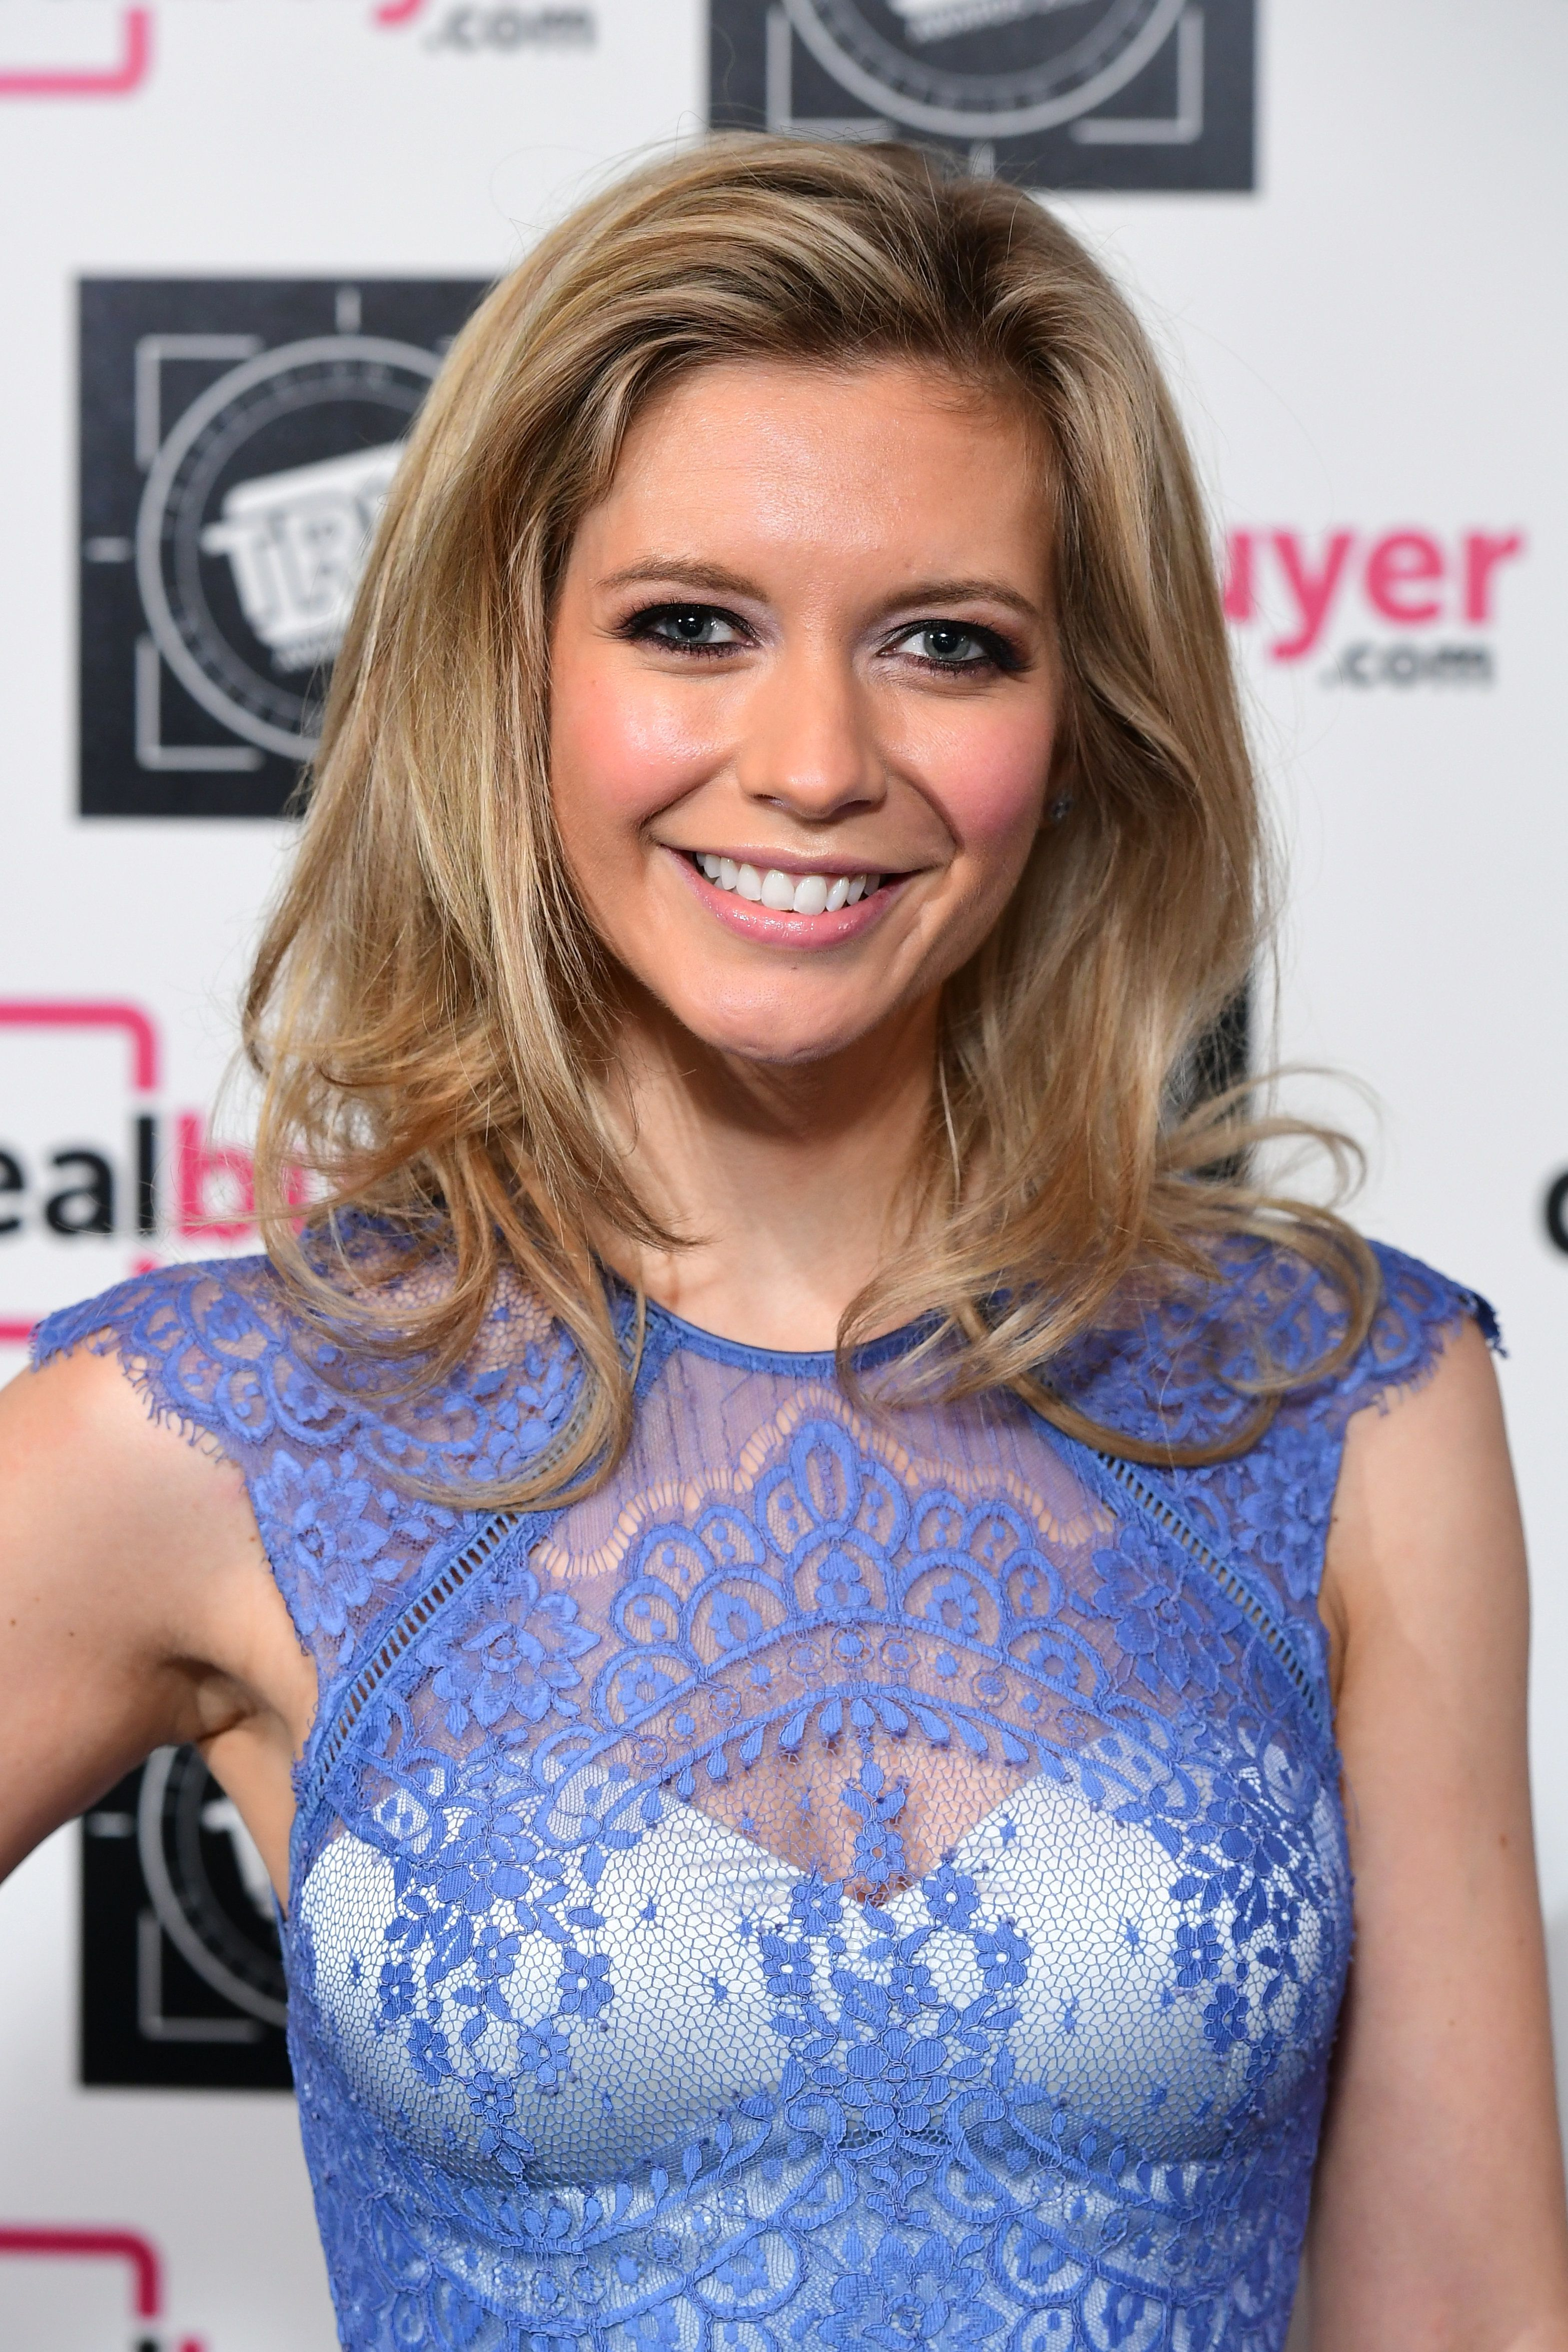 cleavage Selfie Rachel Riley naked photo 2017